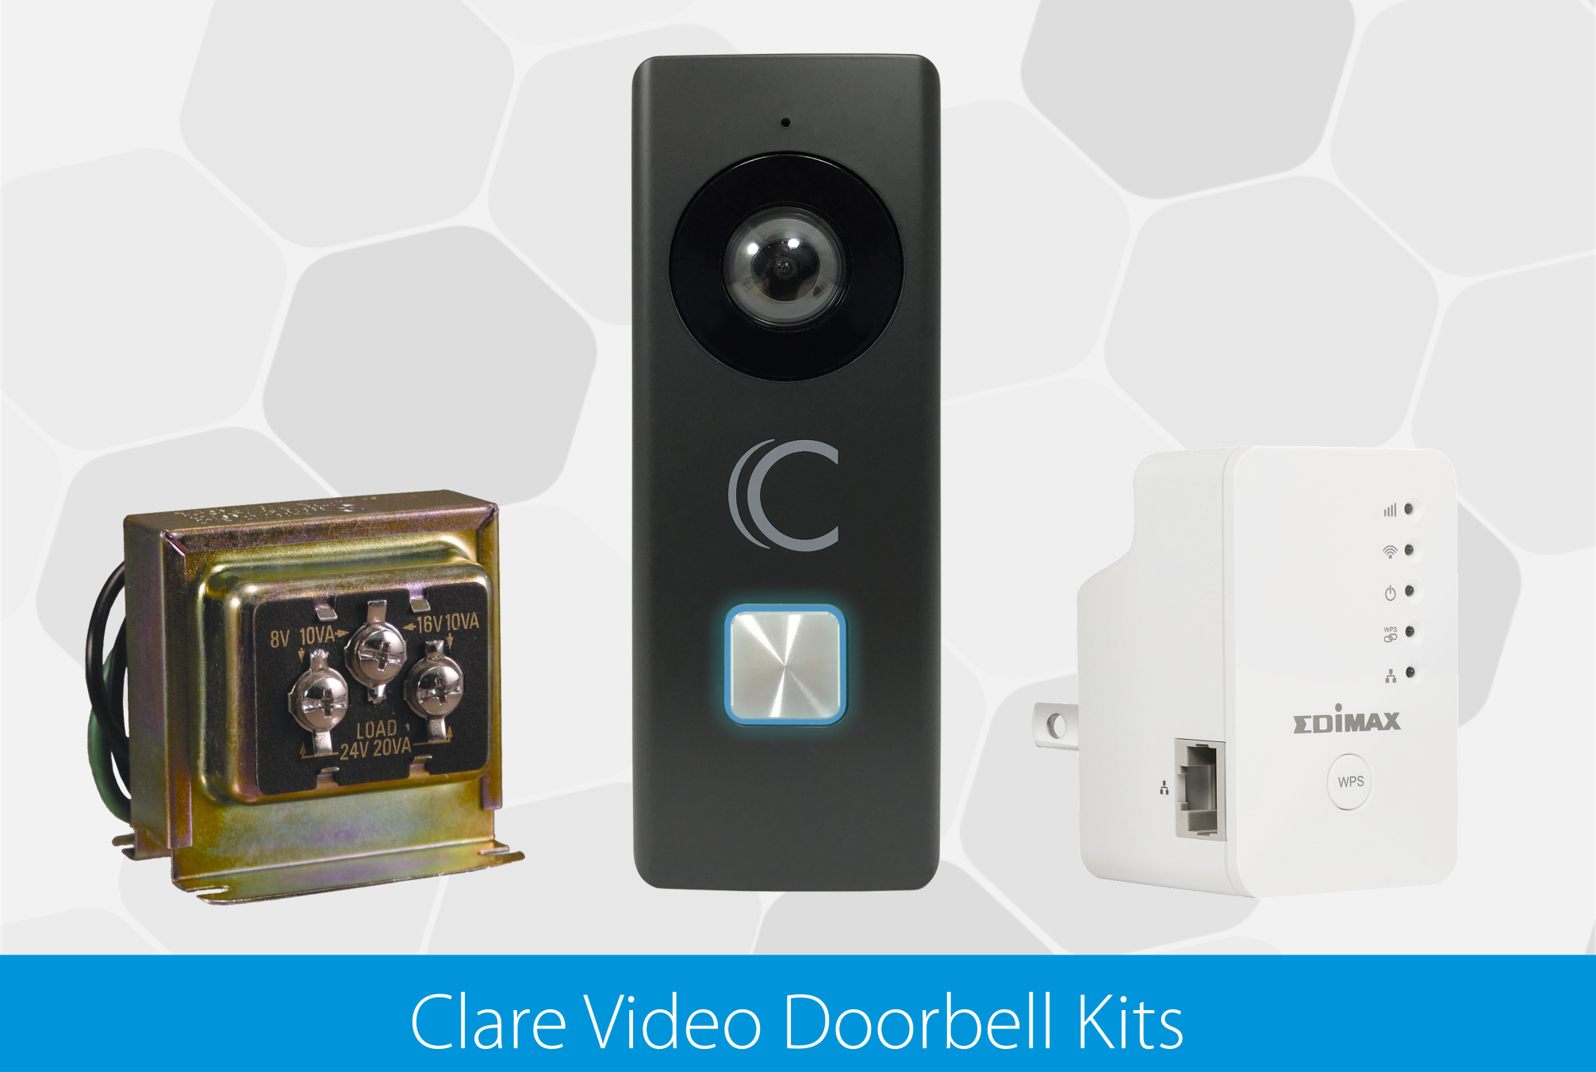 Announcing the Clare Video Doorbell Kits